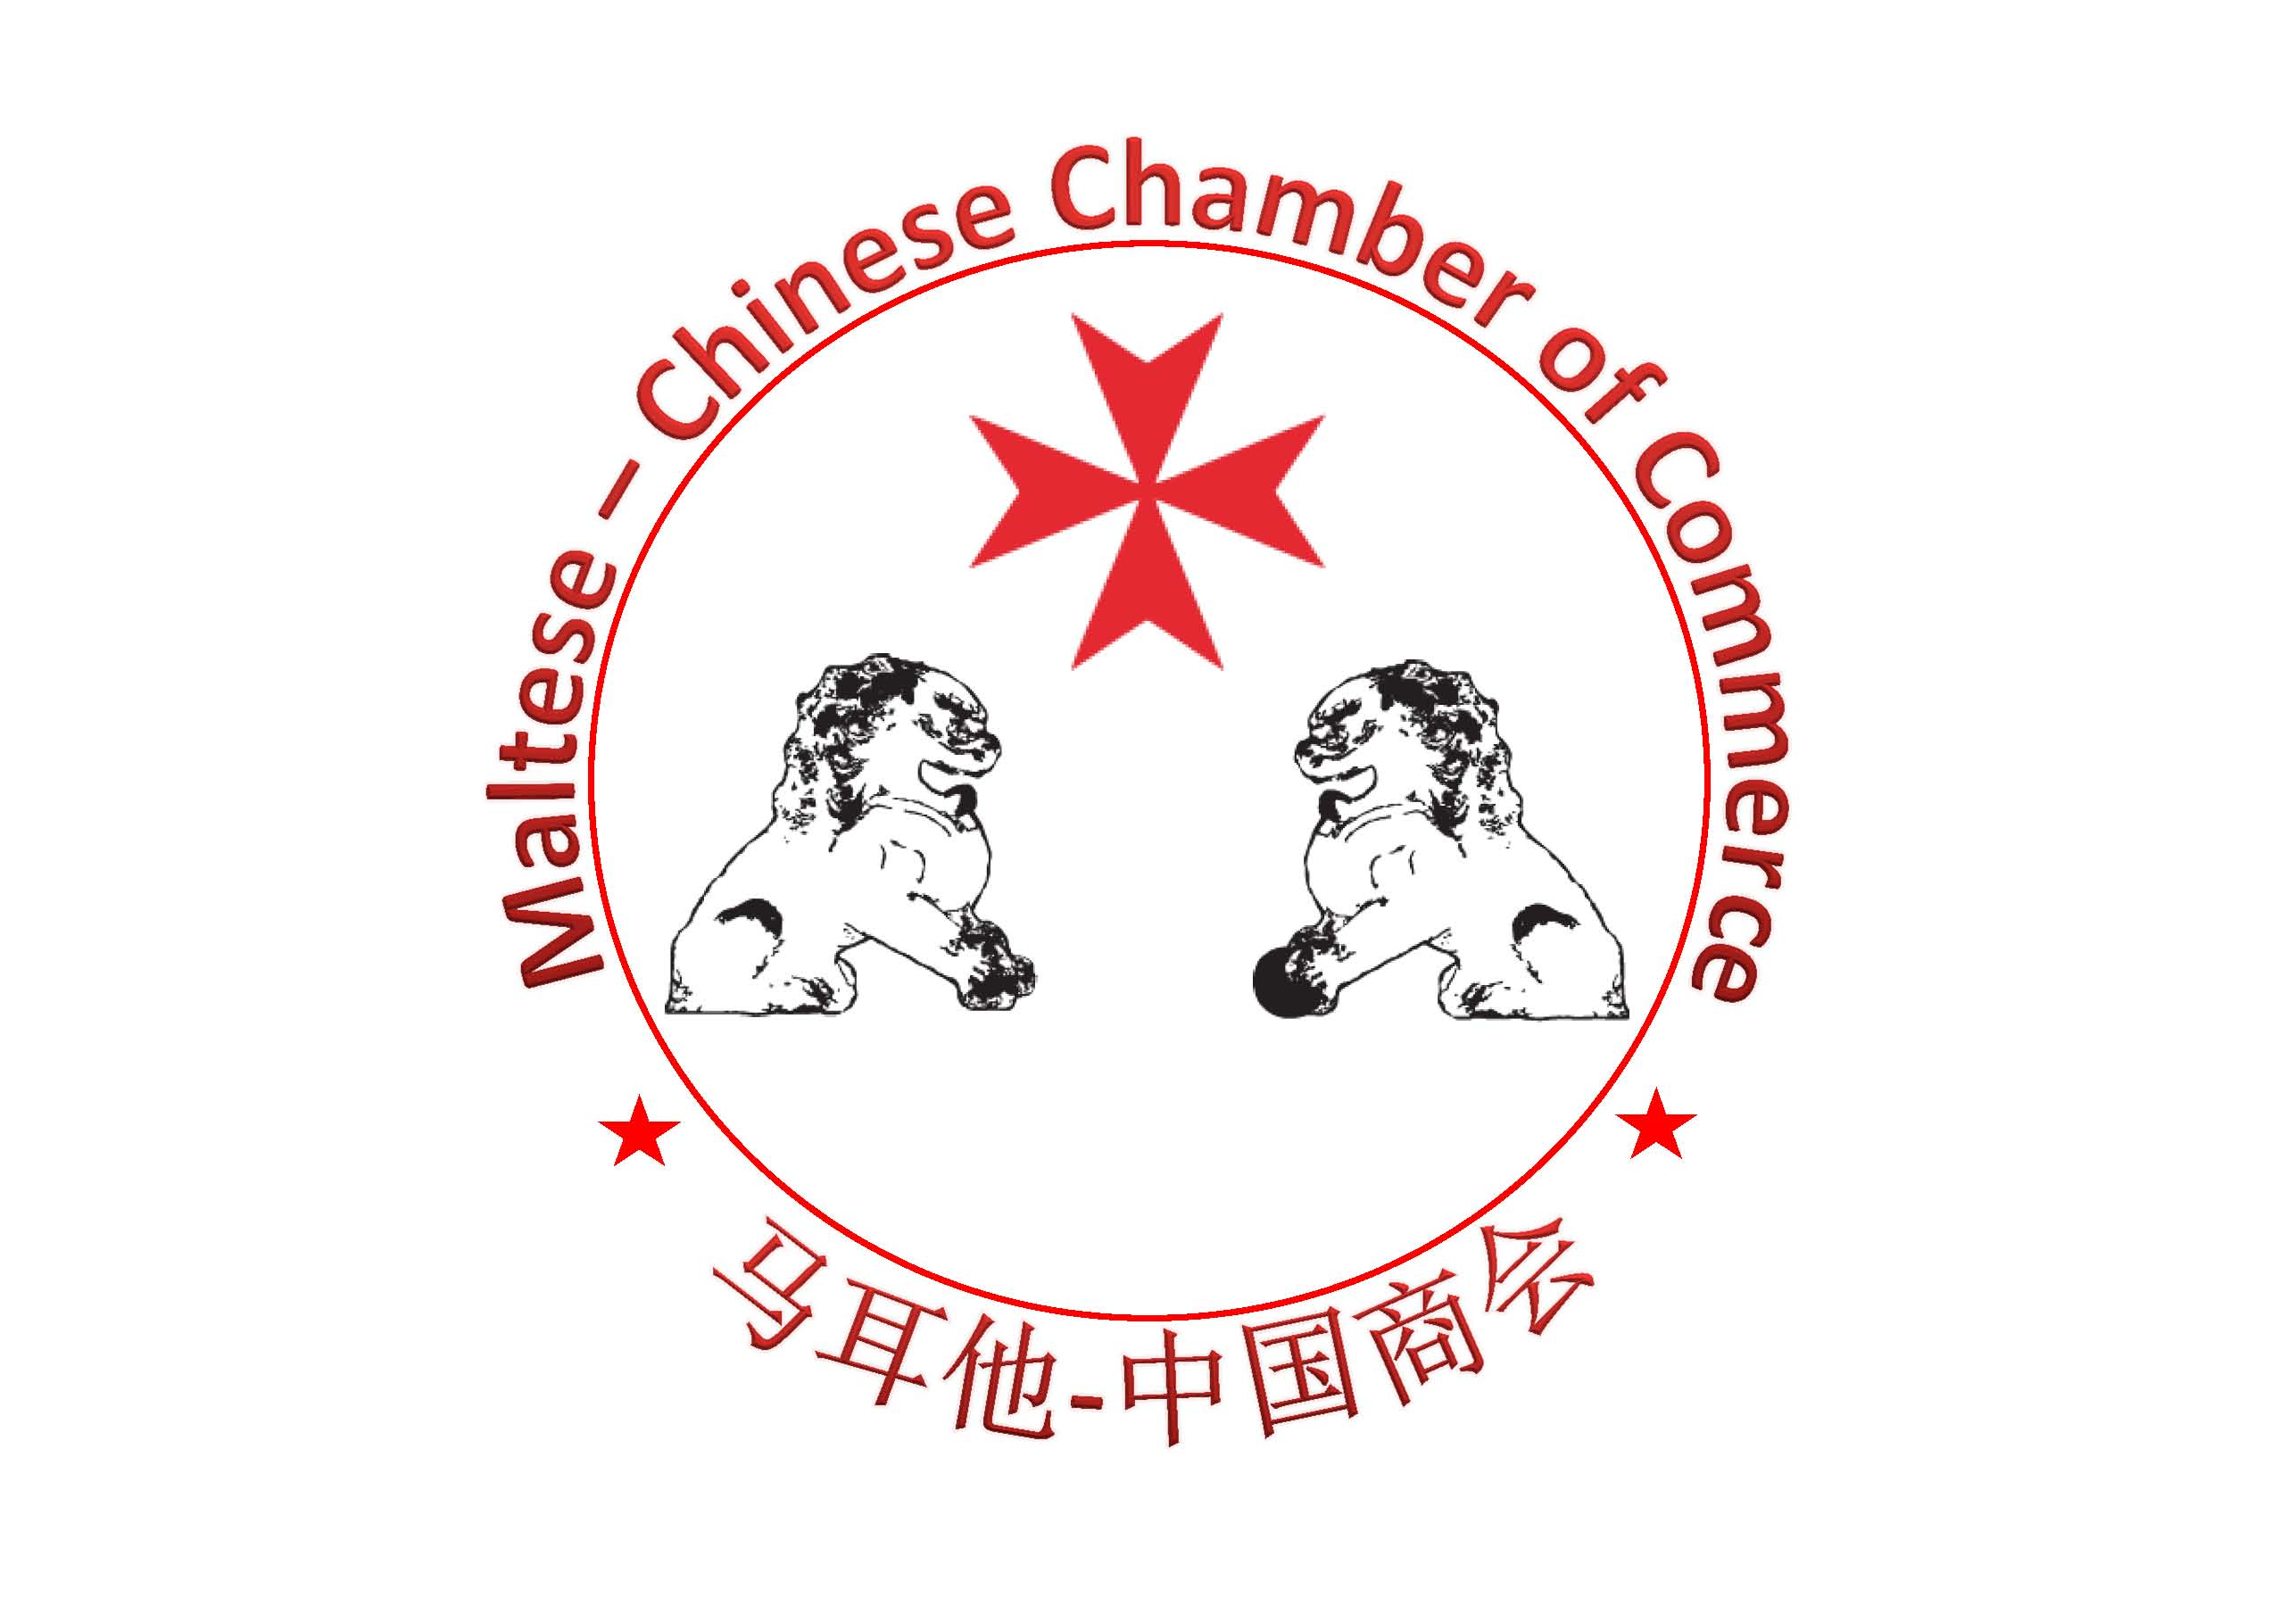 Maltese Chinese Chamber of Commerce